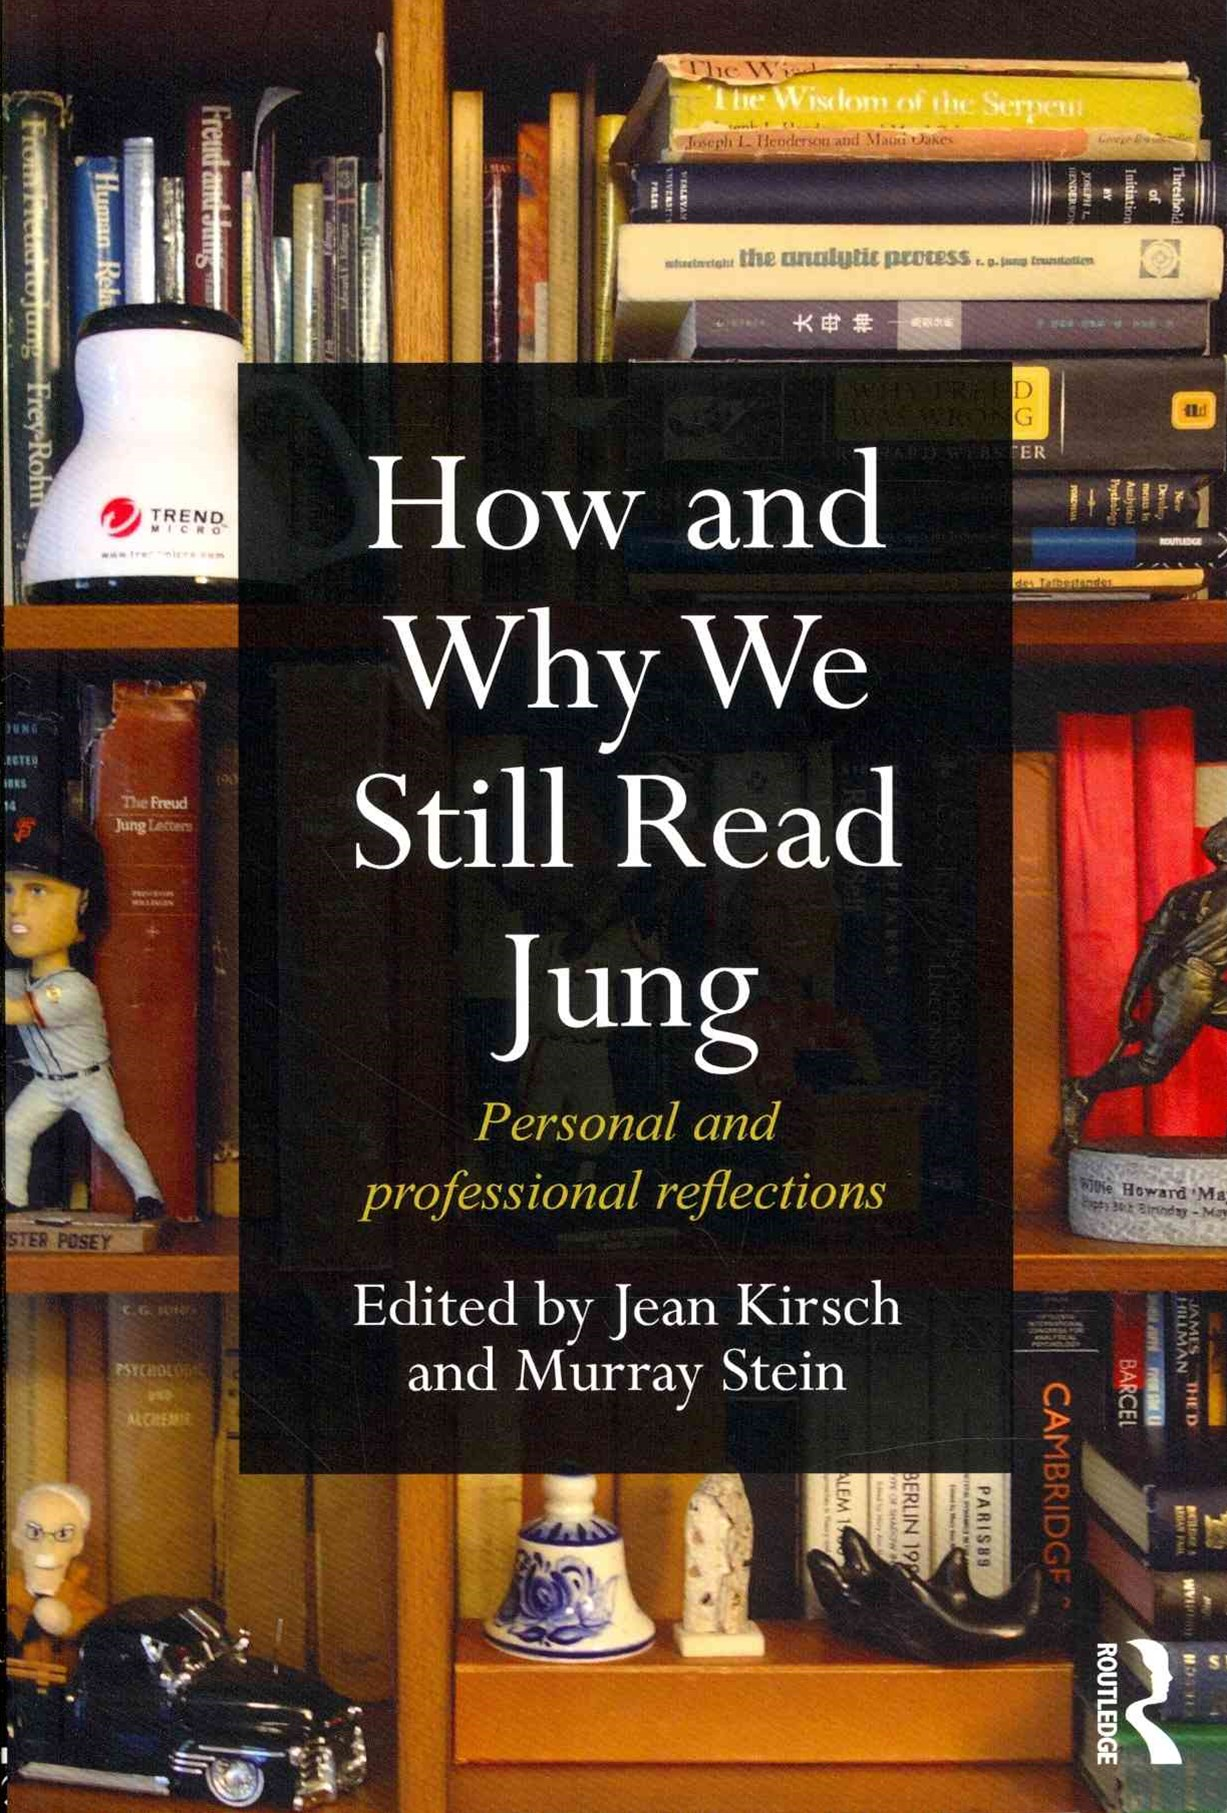 How and Why We Still Read Jung